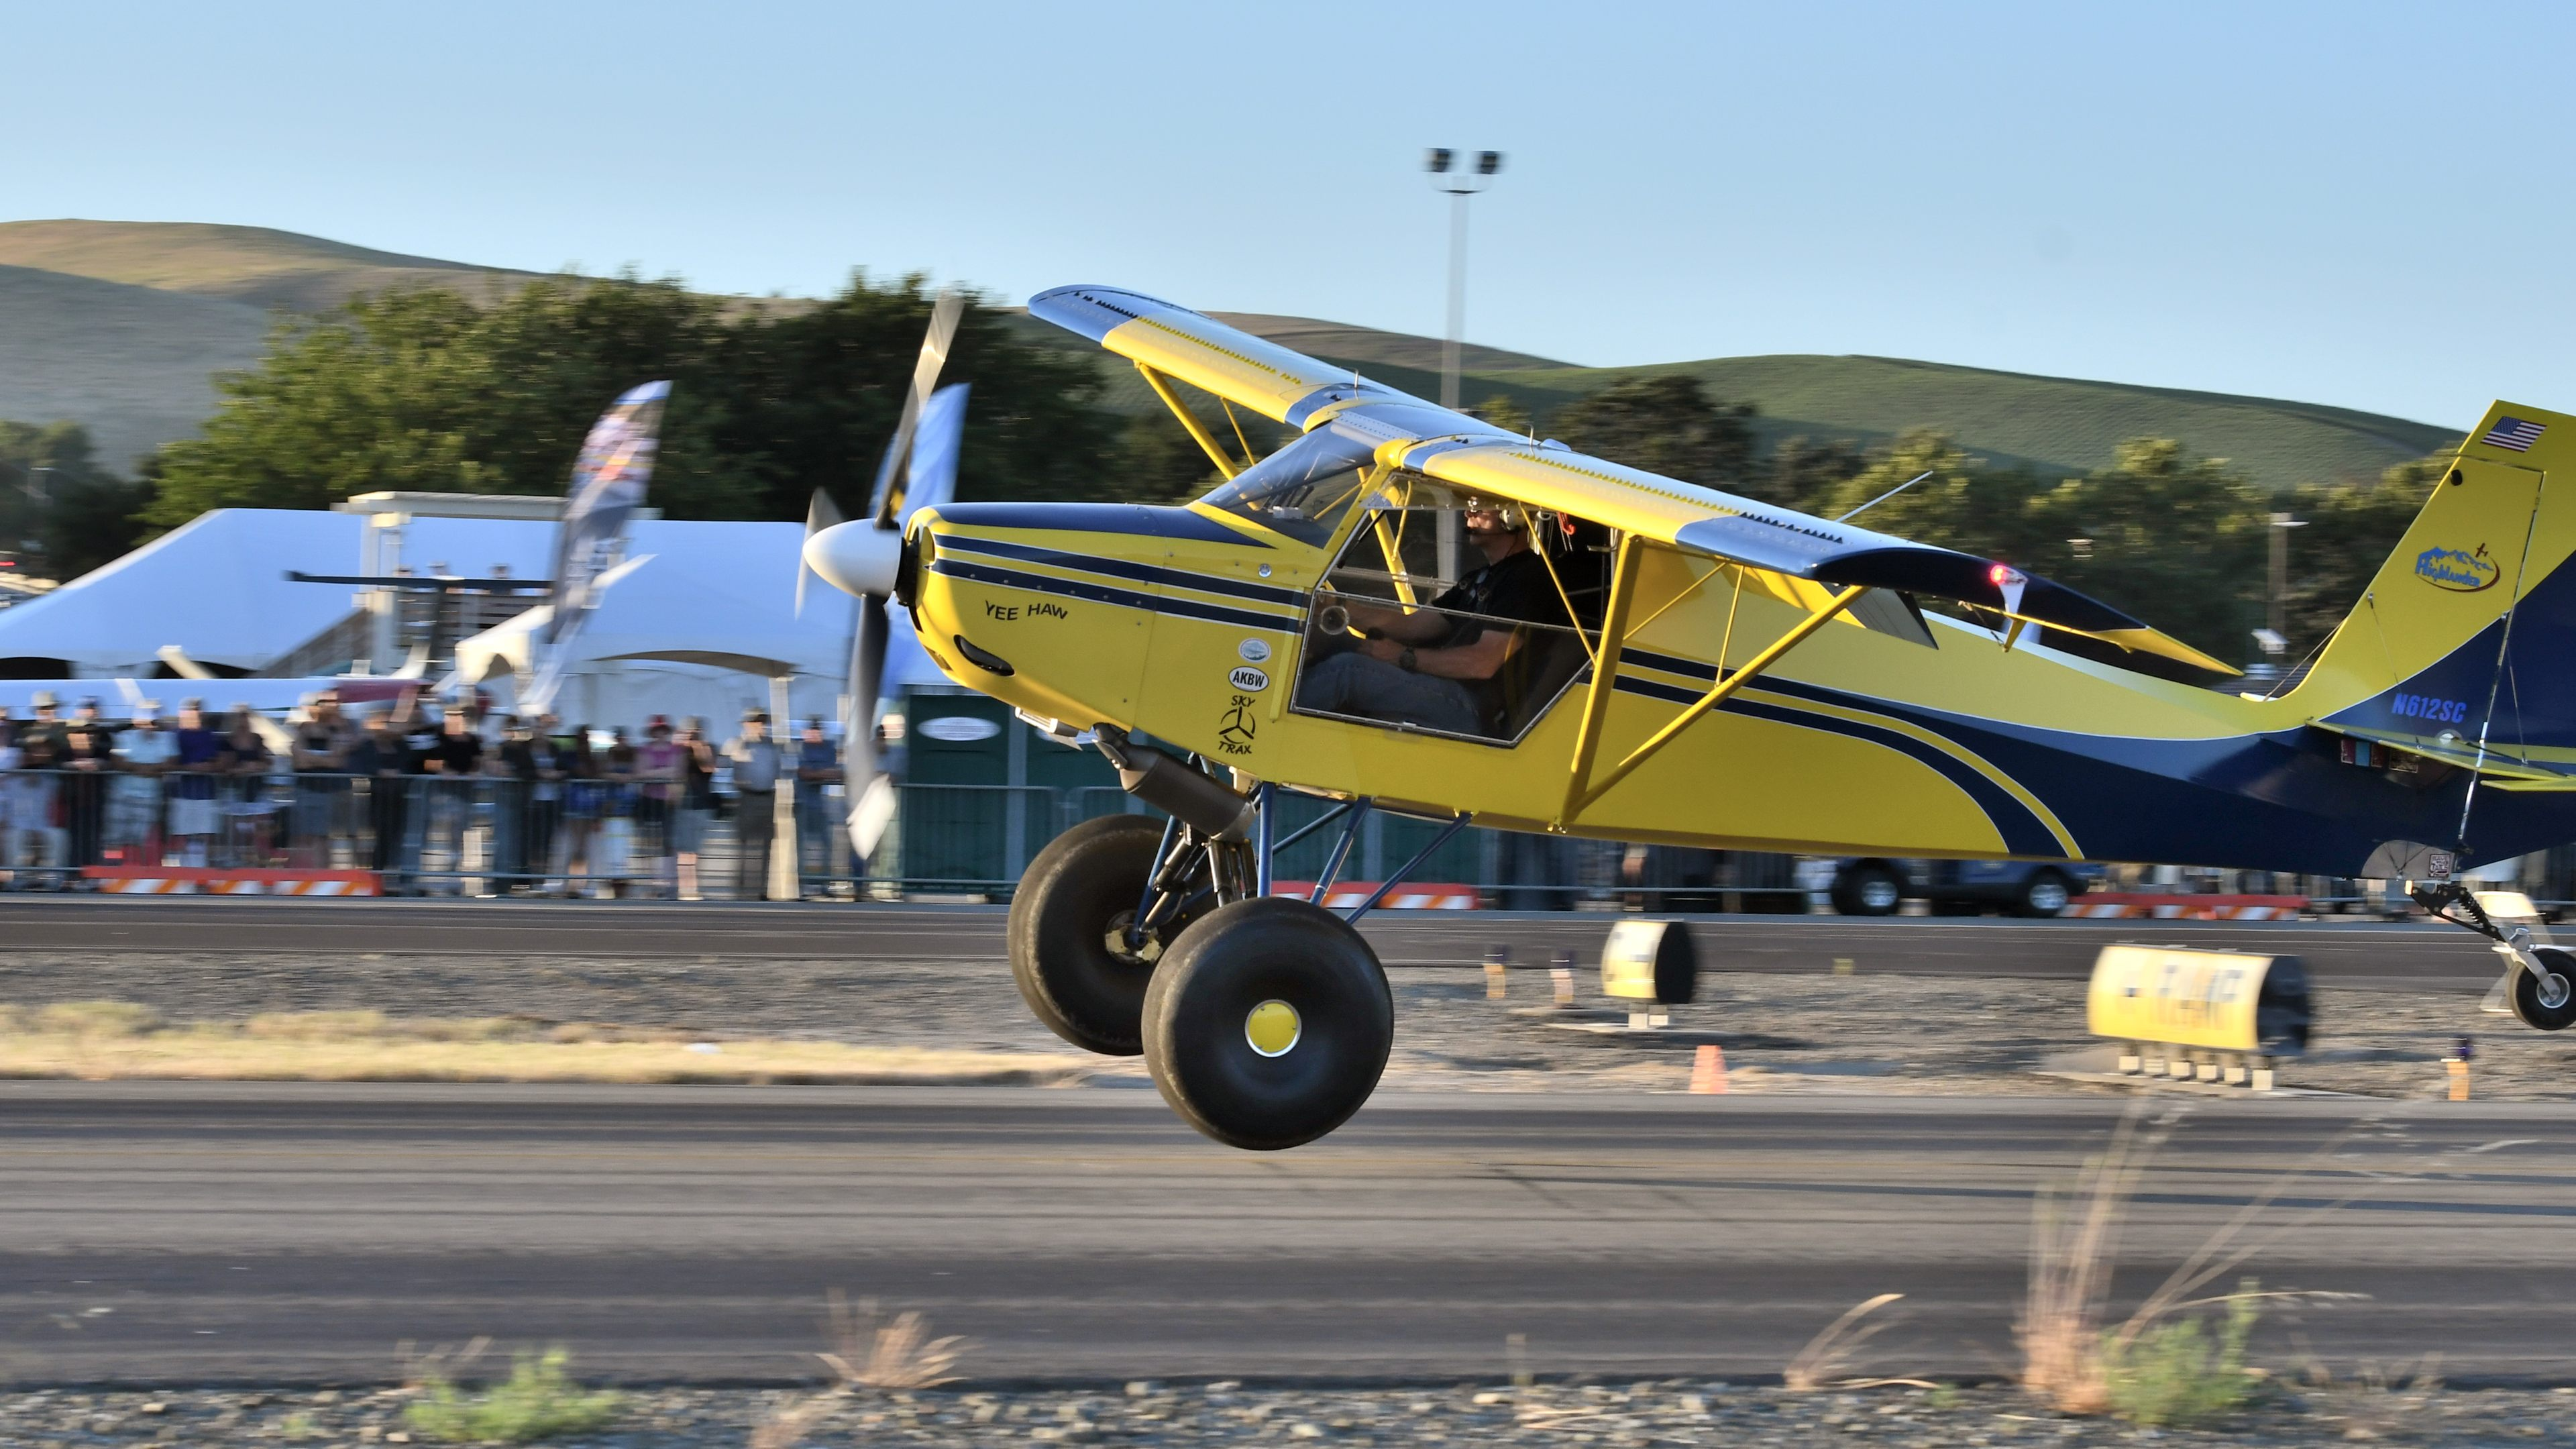 Steve Marlin makes a crosswind landing in his Just Highlander on Friday evening, June 21, during the AOPA STOL Invitational short takeoff and landing demonstration at AOPA's Livermore Fly-In. Photo by Mike Collins.